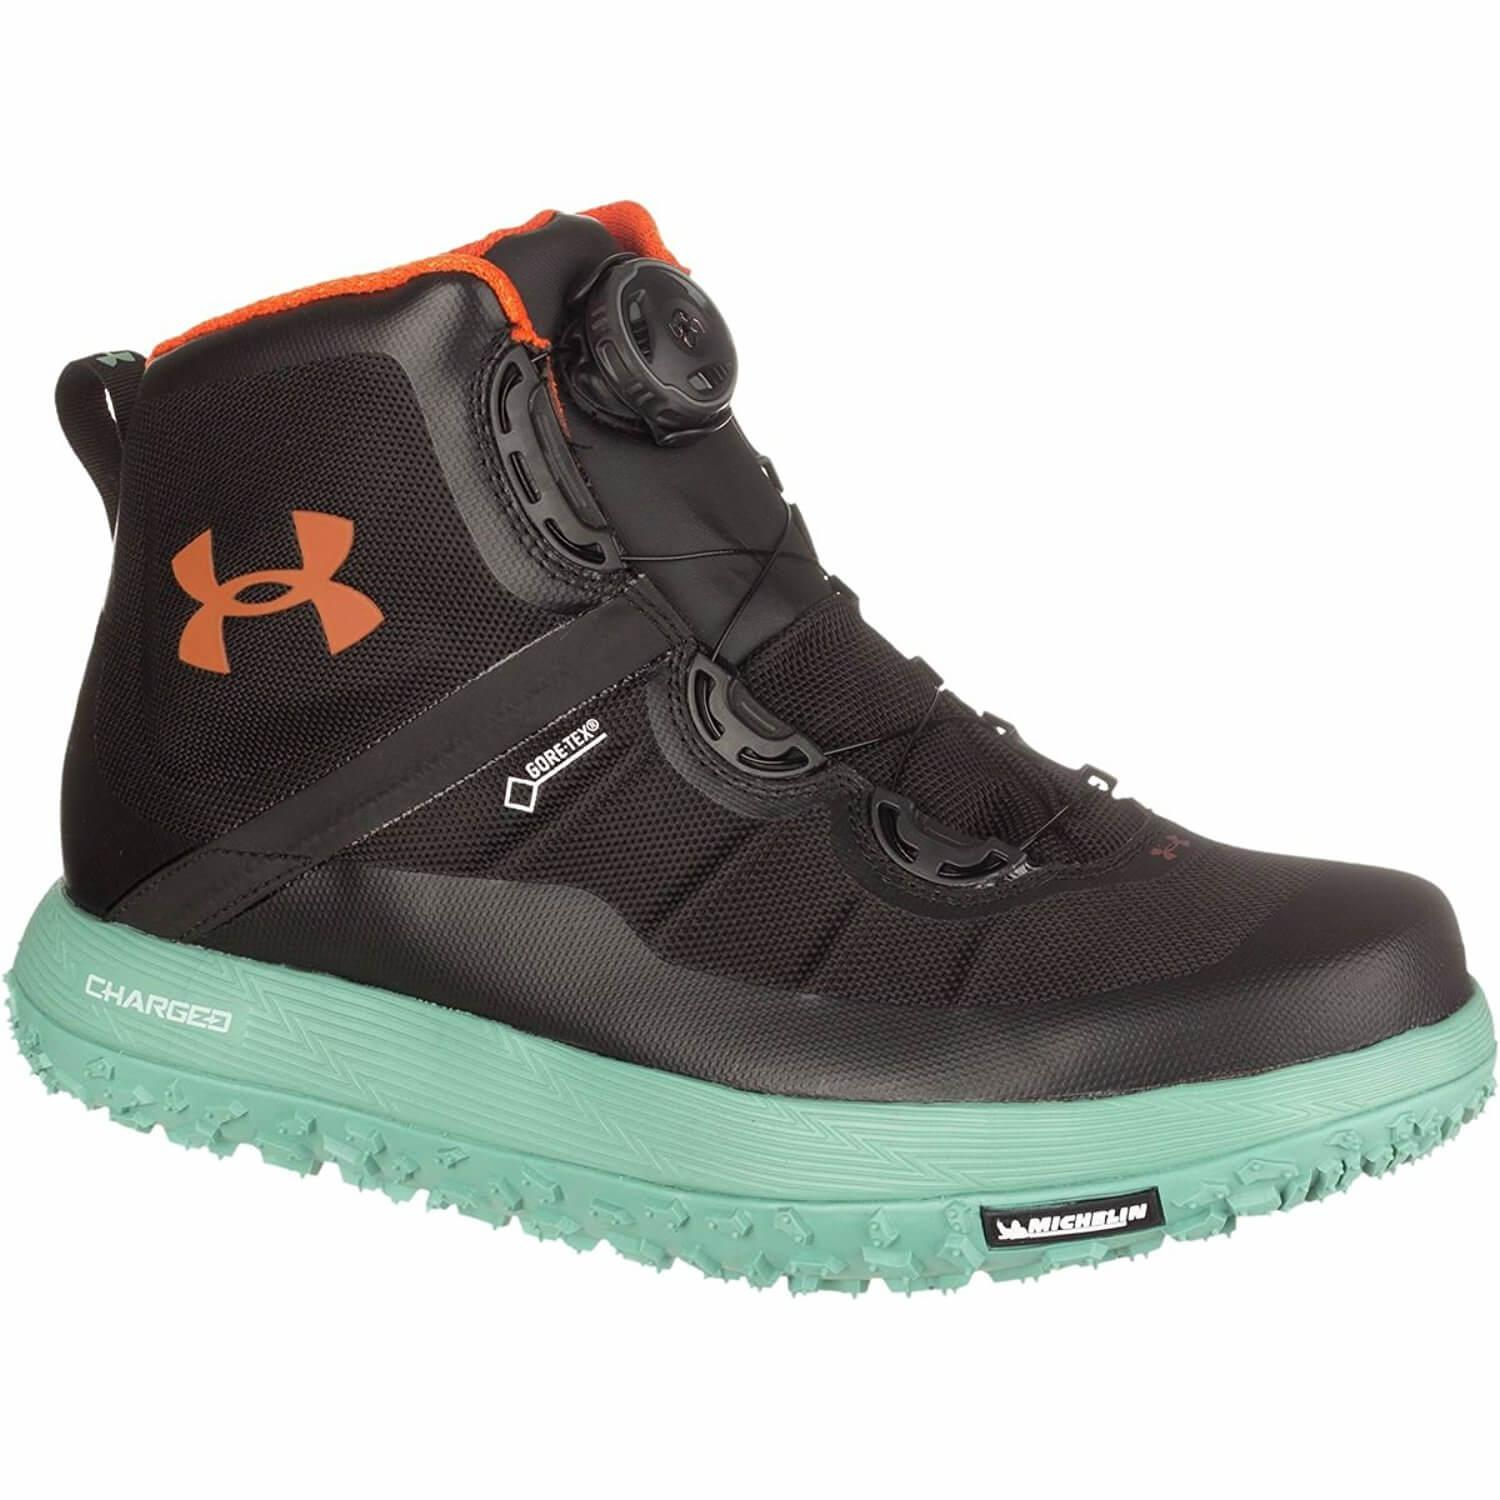 Under Armour Fat Tire GTX with teal outsole and midsole